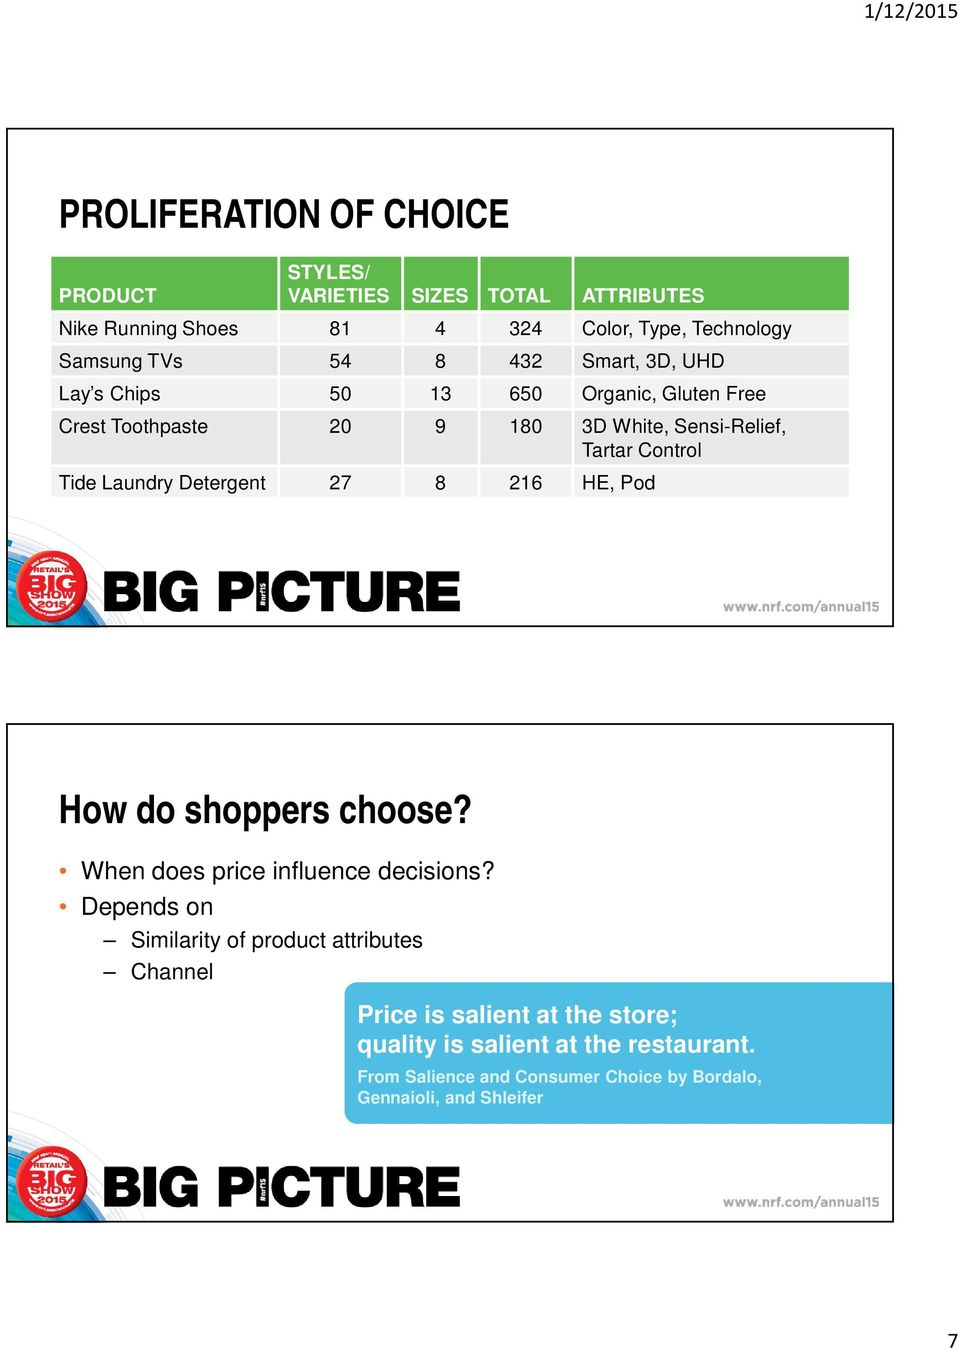 Laundry Detergent 27 8 216 HE, Pod How do shoppers choose? When does price influence decisions?